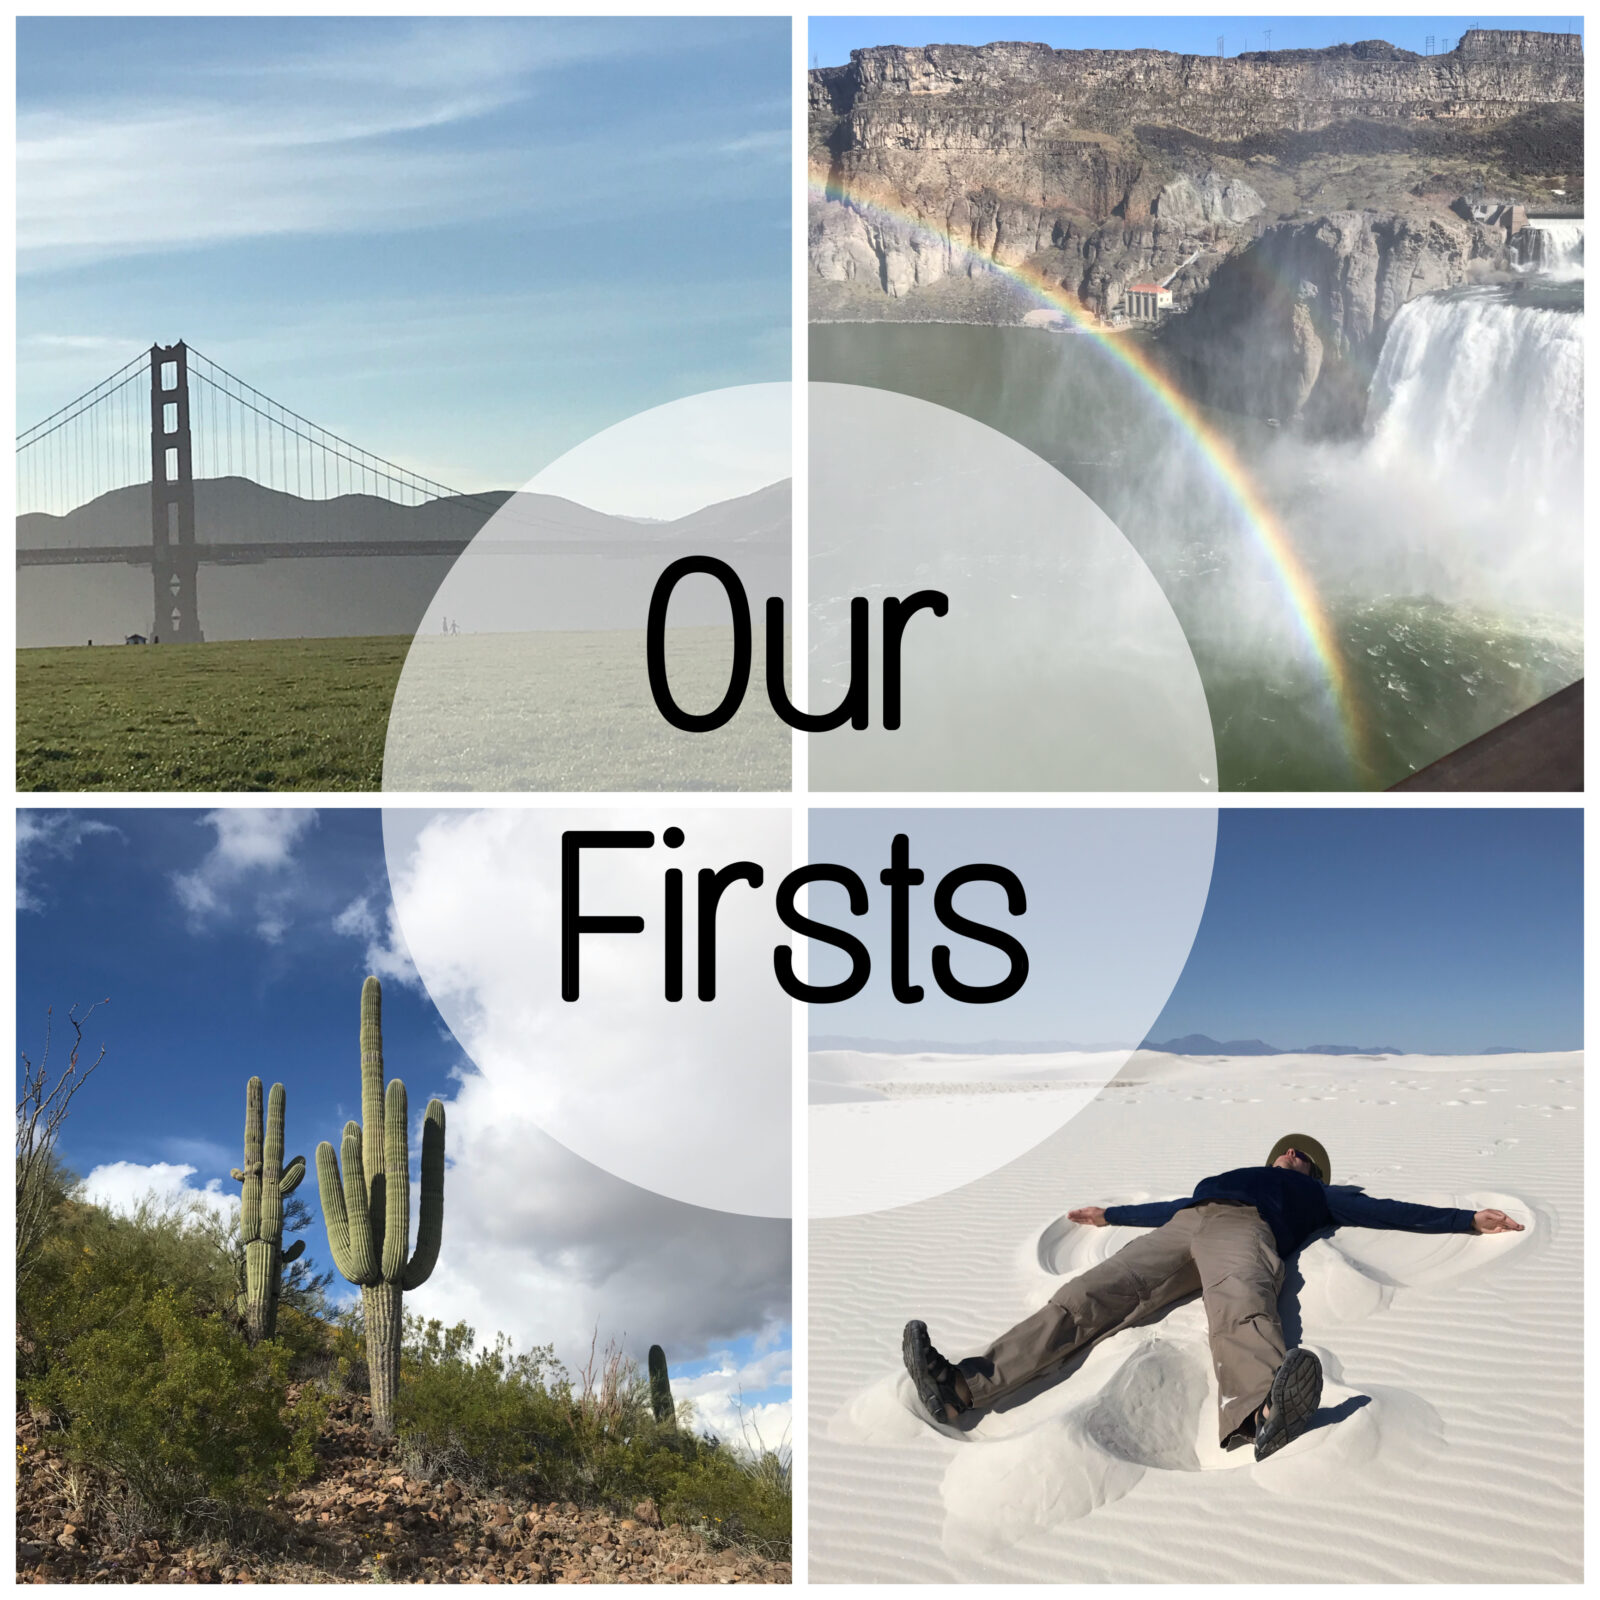 Our Firsts